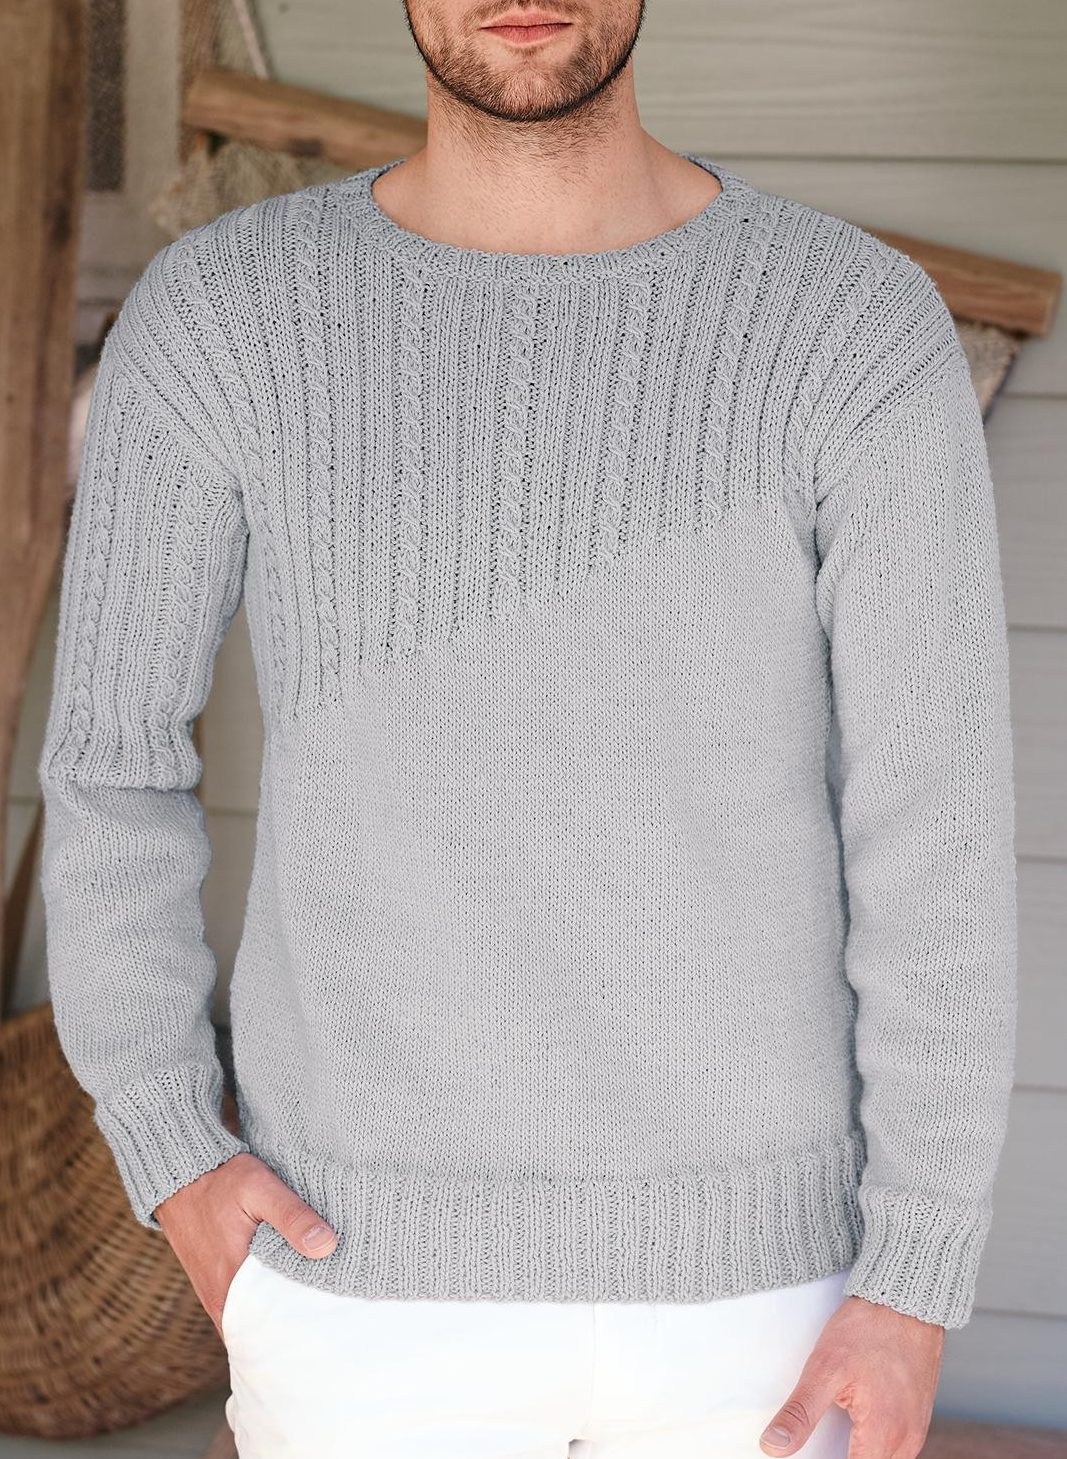 Knit Cardigan Best Of Men's Sweater Knitting Patterns Of Delightful 41 Ideas Knit Cardigan